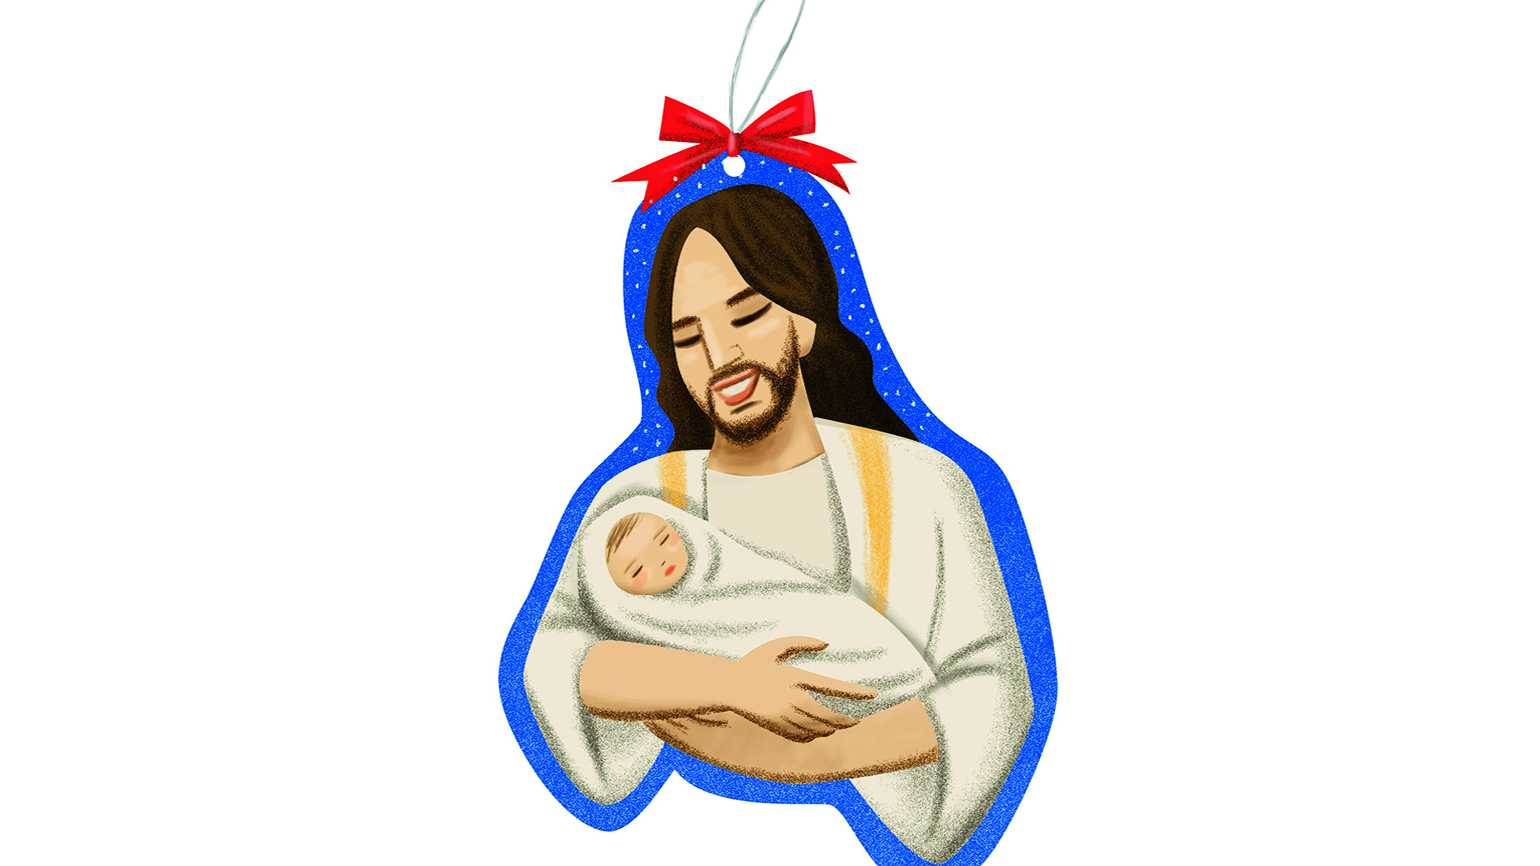 The Christmas ornament depicting Jesus cradling a newborn baby in his arms.